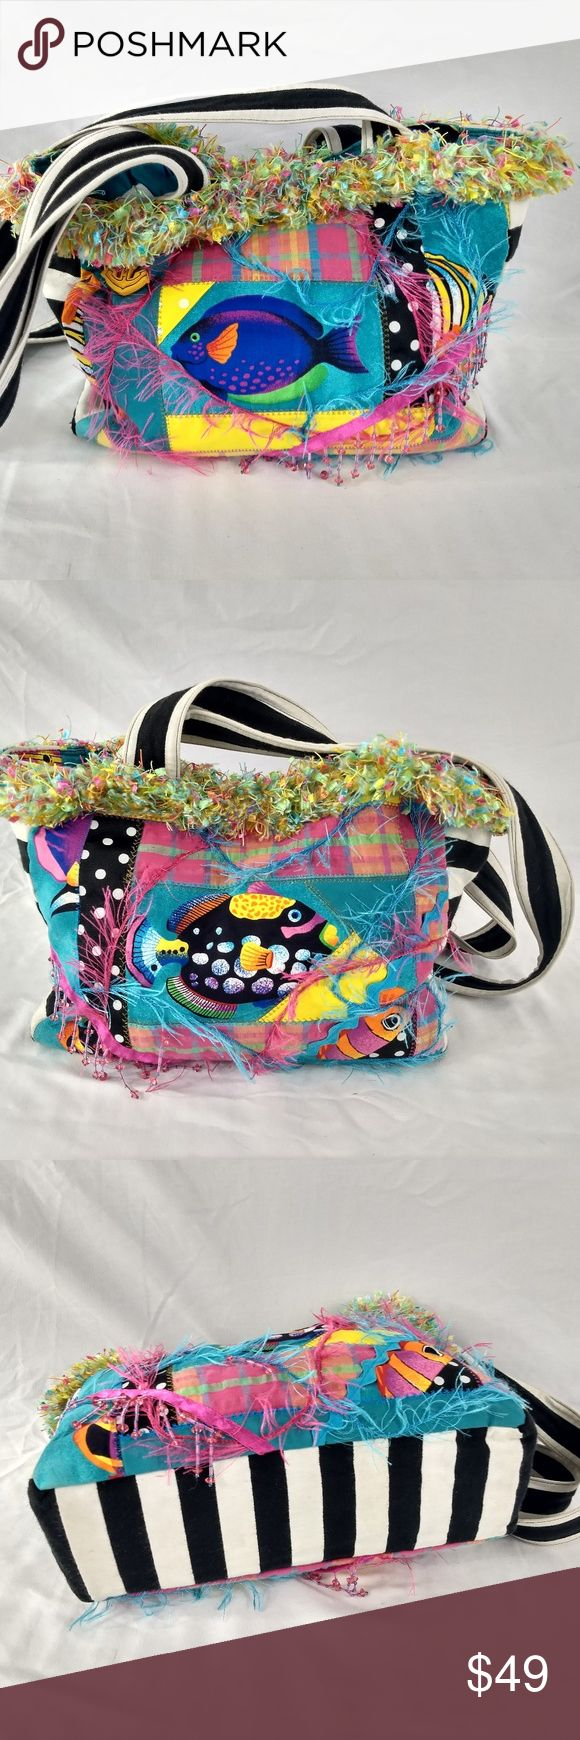 "AMAZING TROPICAL FISH COLORFUL BEACH BAG This item is one of a kind.  It shows almost no wear, easily 9 of 10.  Unique bag, that is hand made one of a kind.  Lining is beautiful with various colorful tropical fish.  Gorgeous Boho.  Fabric feels like a cotton canvas.  Minor wear from normal use but very clean inside and out.  Unique bag.  MEASURES:  14 X 10 X 3 with a 15.5"" strap drop. Poshmark Bin #4 (SP) MarKen Designs Bags Hobos"